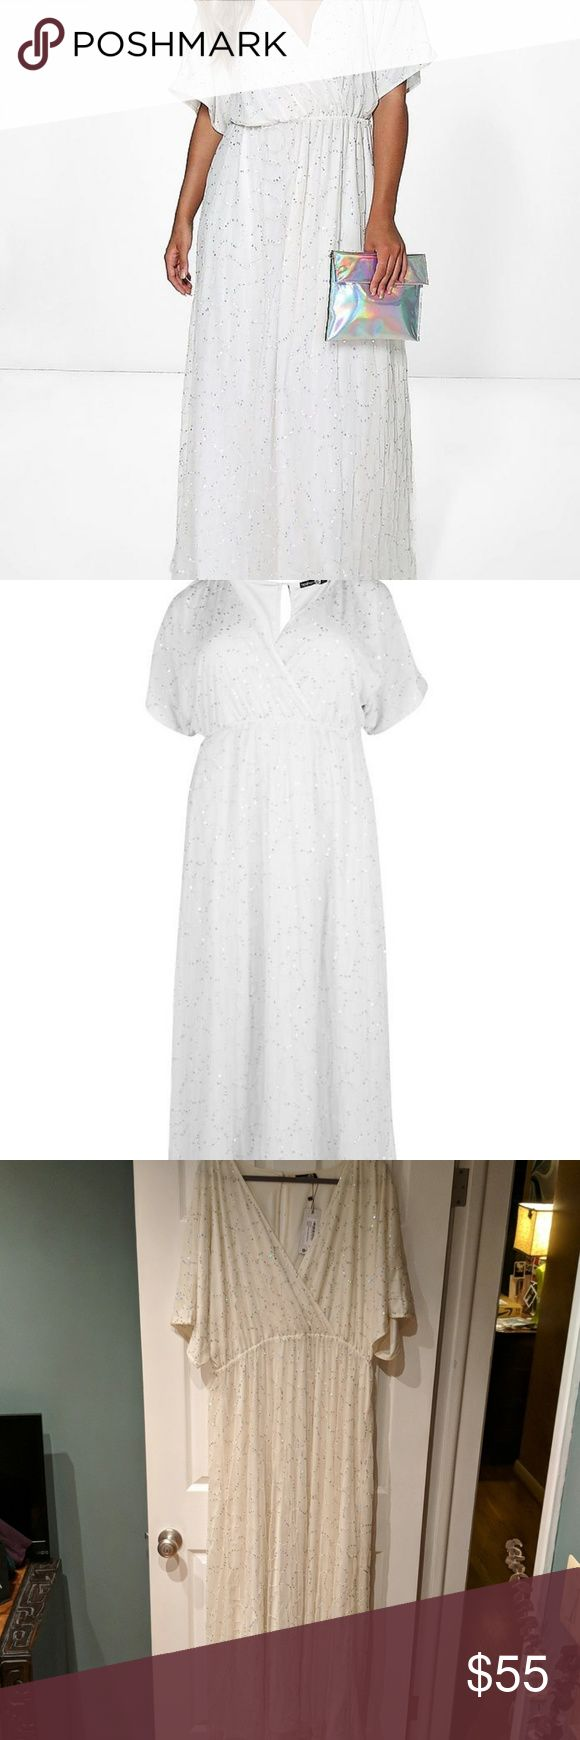 Plus Size Sequin Ivory wedding dress with sleeves this dress is DIVINE.  it's sparkly and it has sleeves and it's breezy and IT IS YOUR SIZE!    BOOHOO plus size us20 uk24.  Empire waist. Lined. Boohoo Plus Dresses Maxi